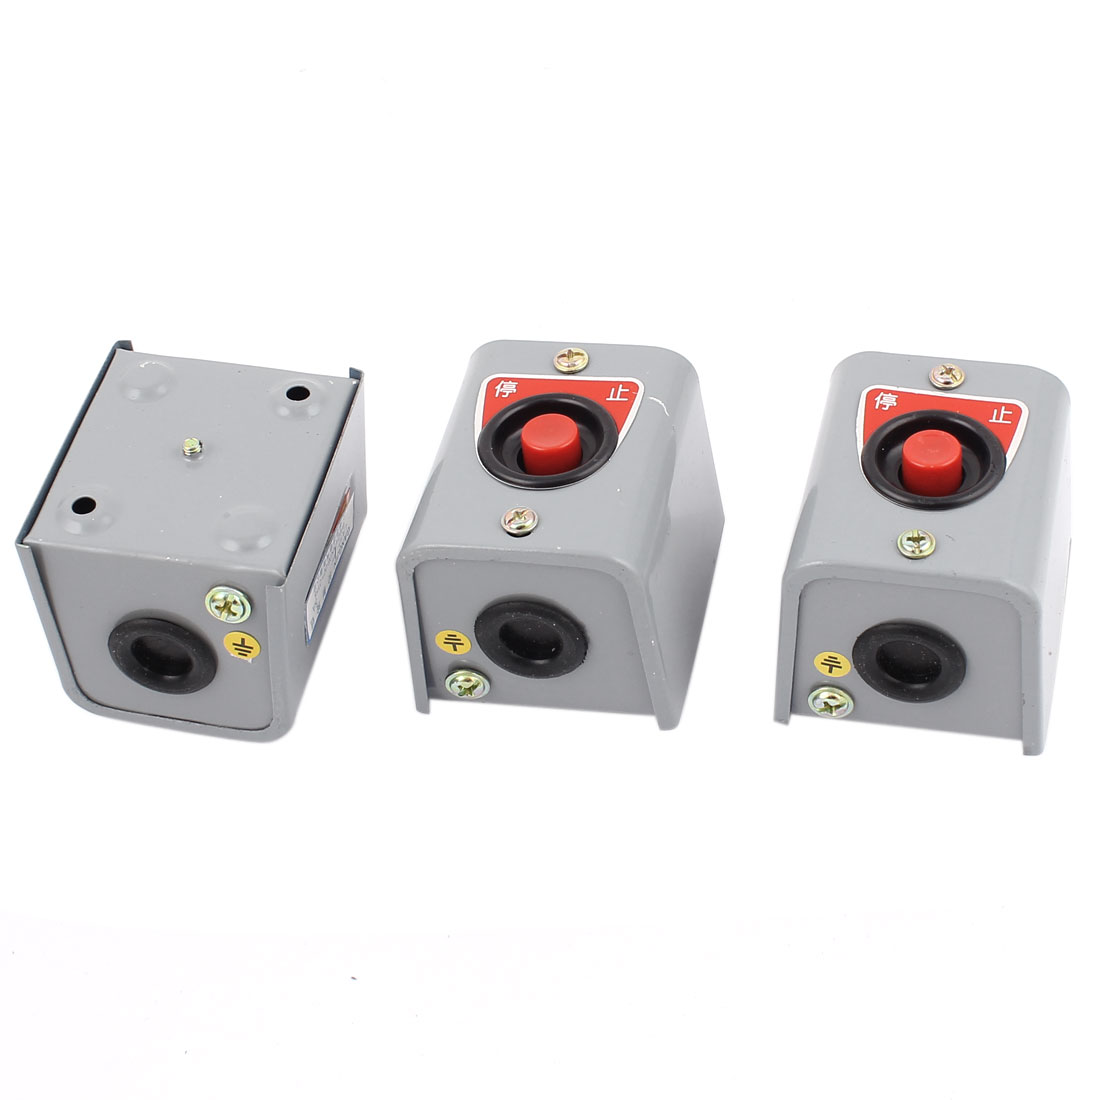 3pcs LA10-1H DPST 2NC 1P Stop Momentary Pushbutton Switch AC 380V 5A